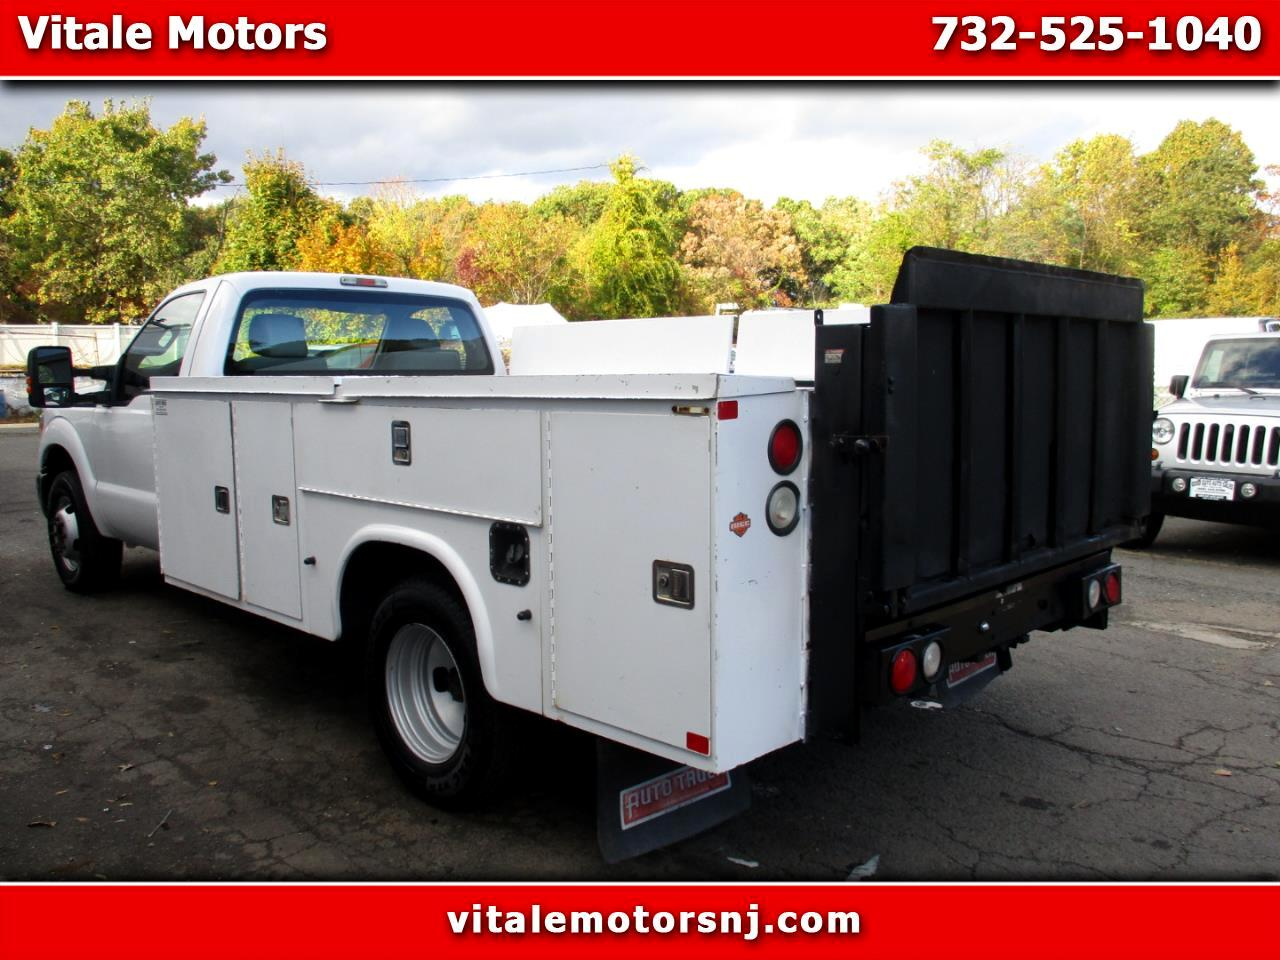 2012 Ford F-350 SD UTILITY BODY DUALLY W/ LIFTGATE